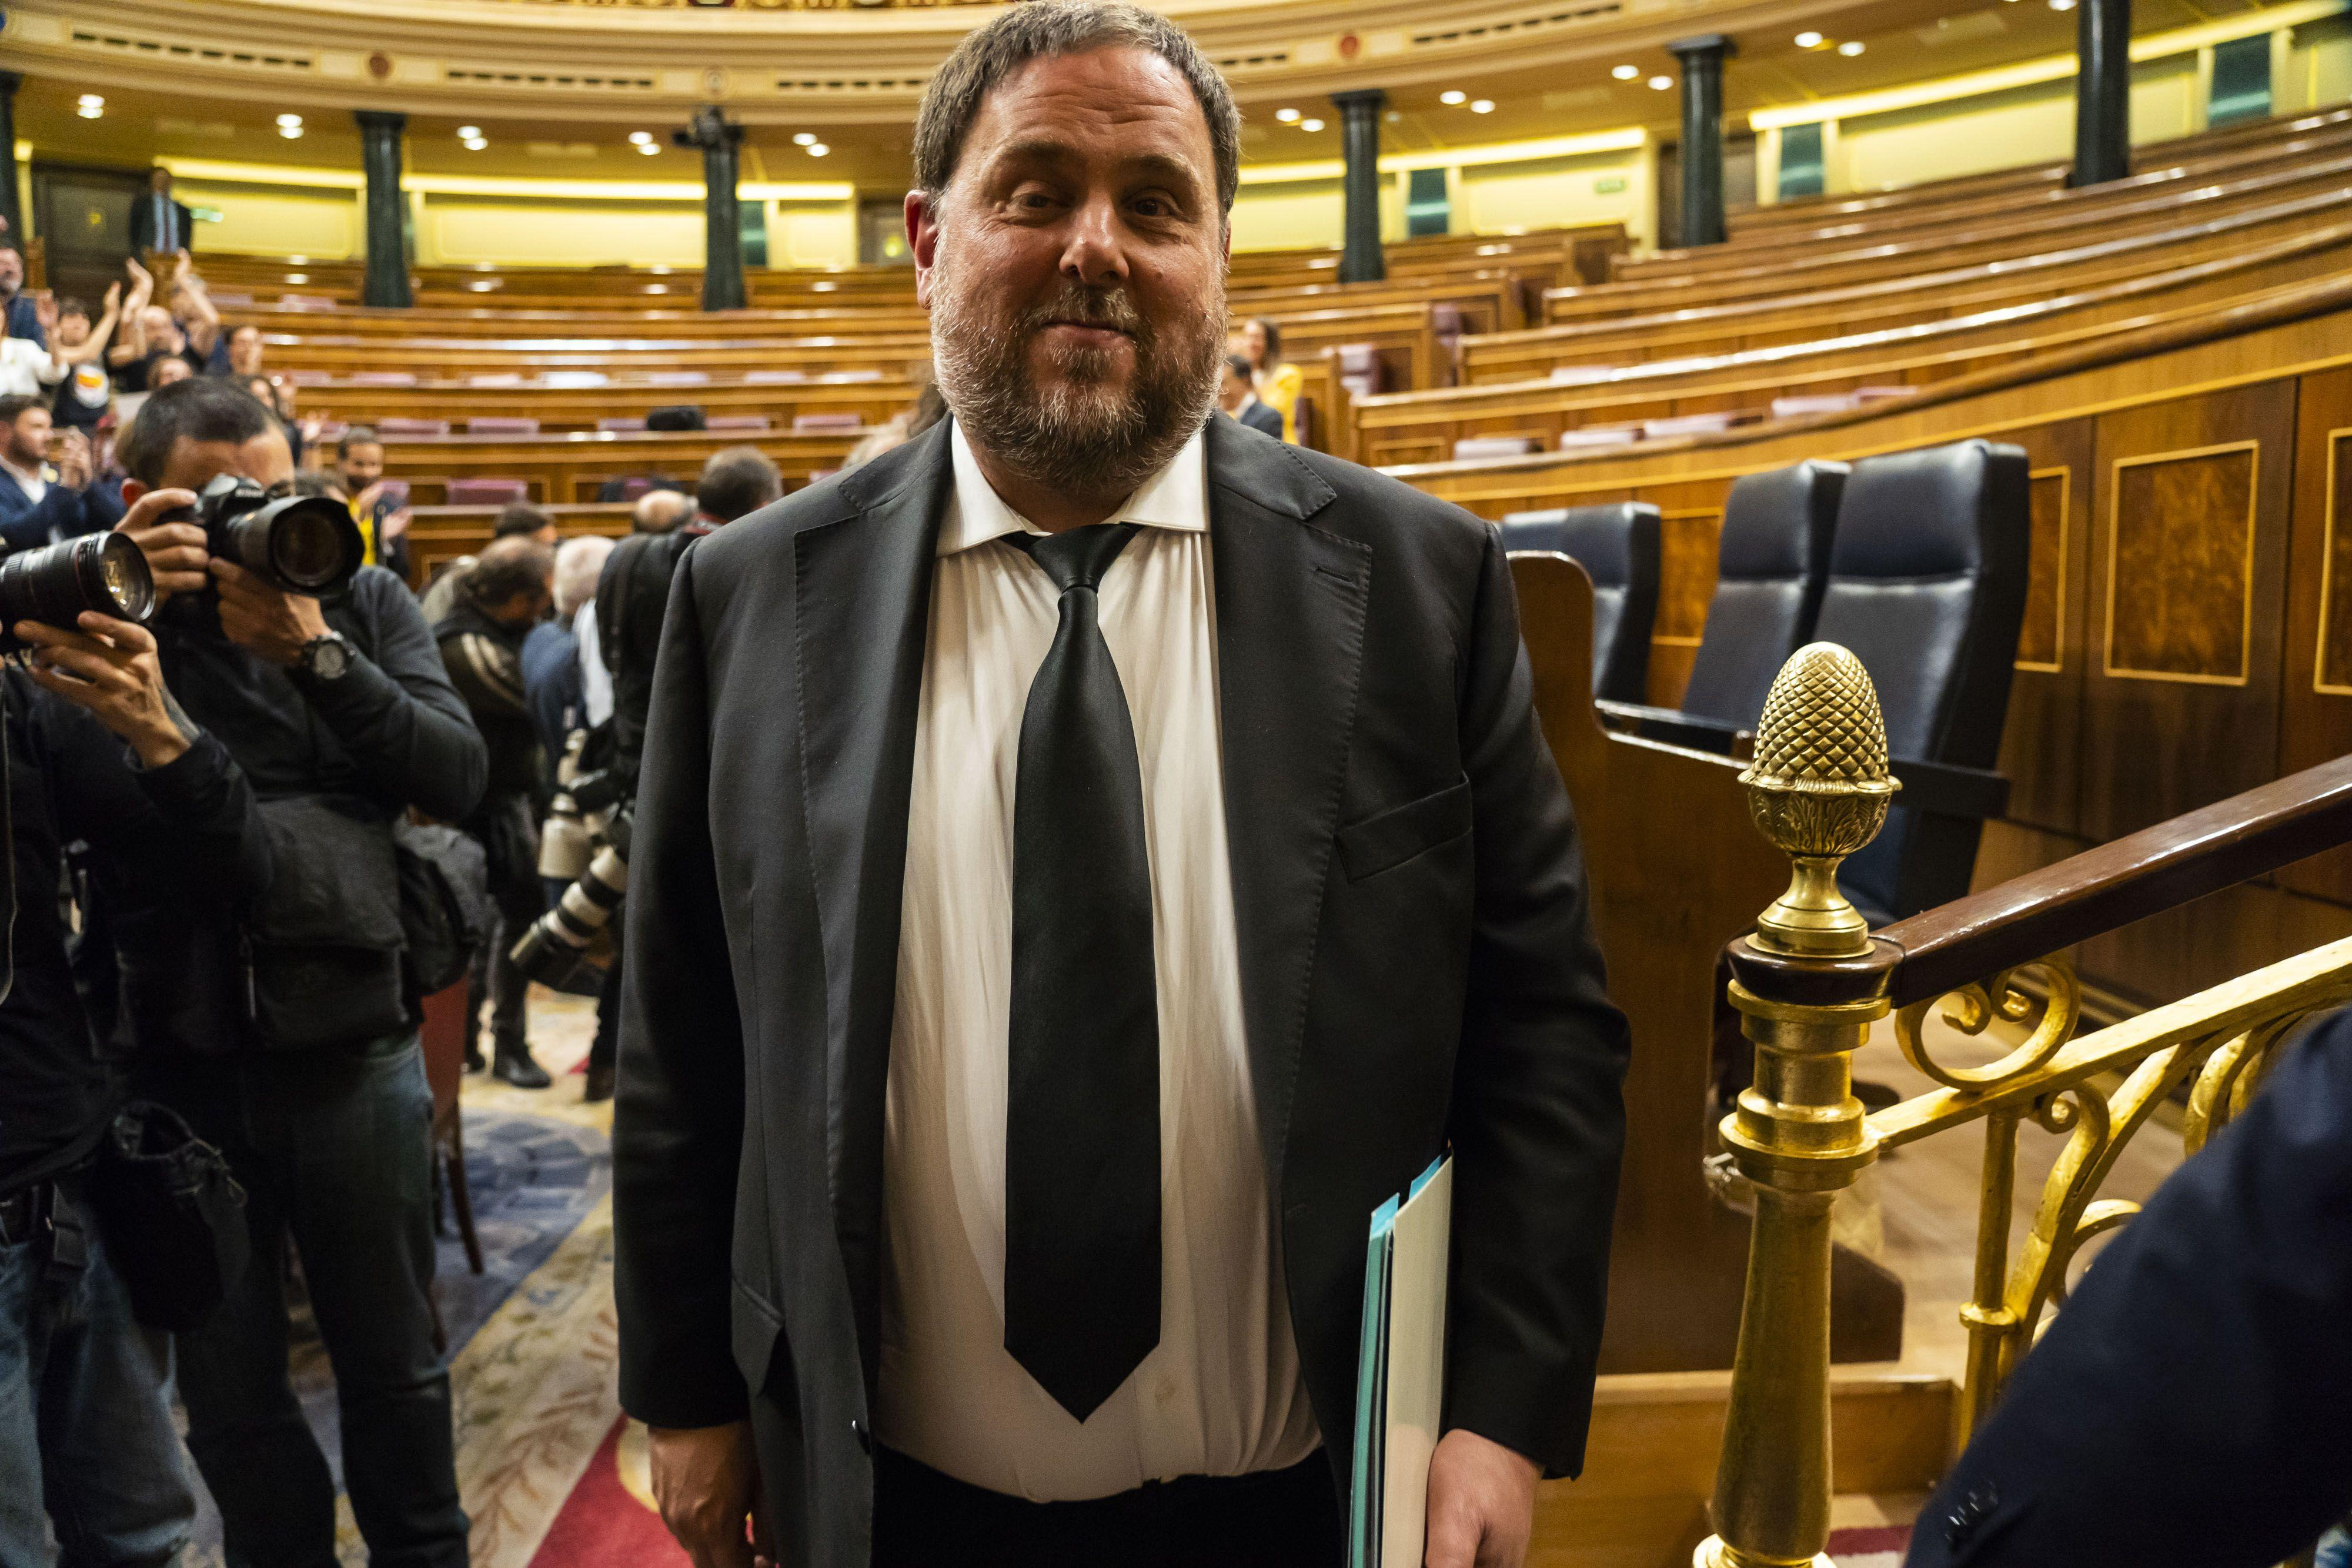 Jailed Catalan leader had immunity as MEP, court rules